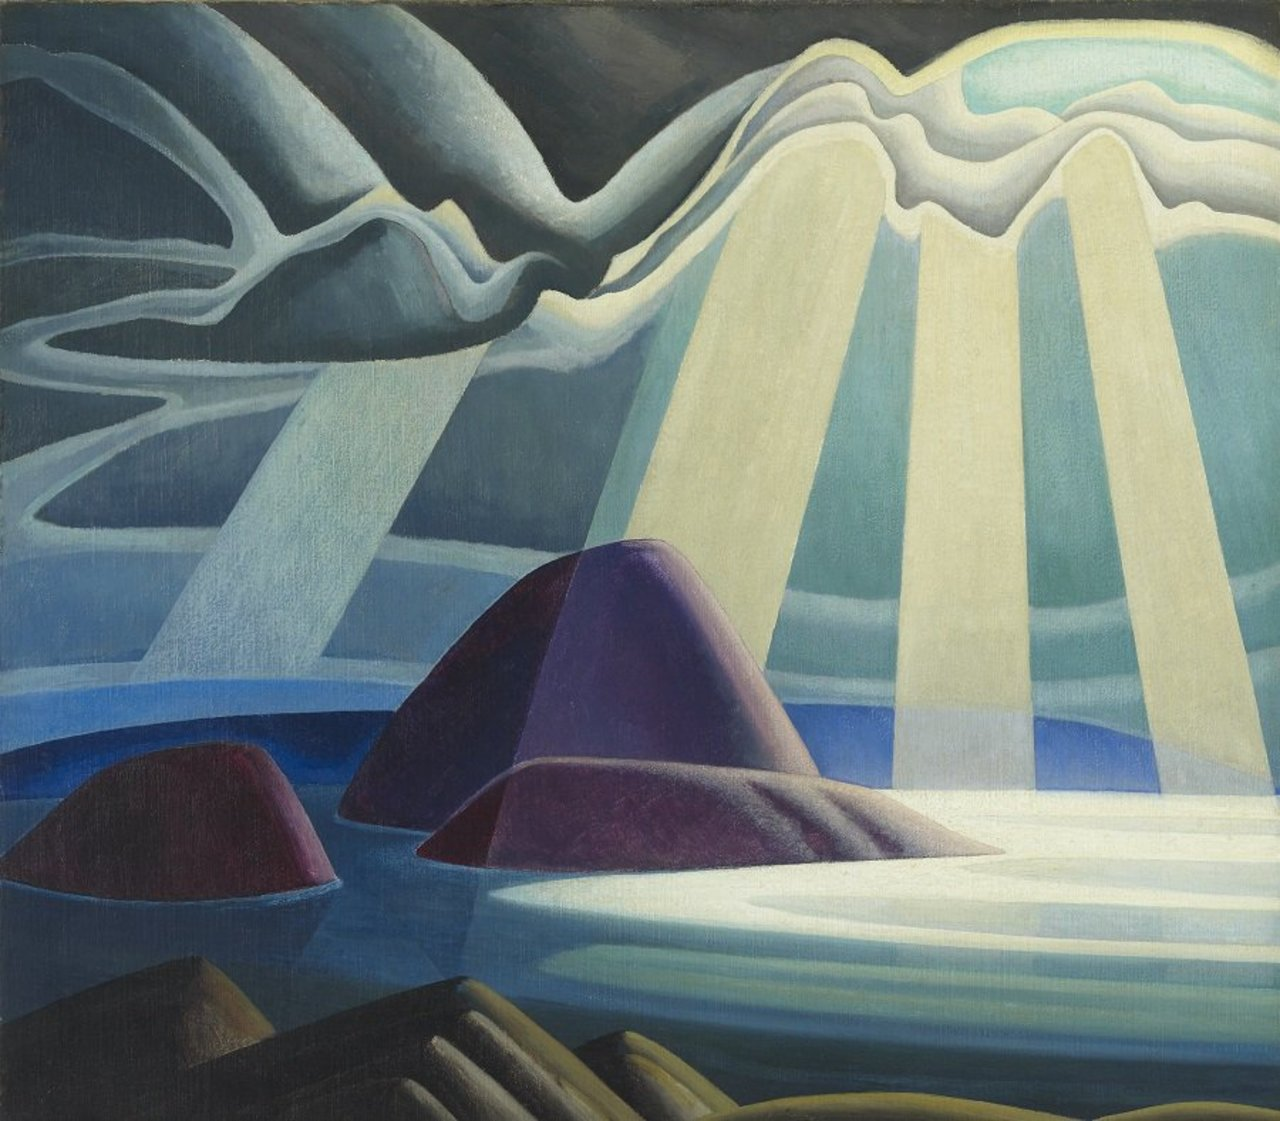 Curated by @SteveMartinToGo, Idea of North: The Paintings of Lawren Harris opens in 2 weeks. http://bit.ly/1XrJesJ https://t.co/0U0uufP1RF